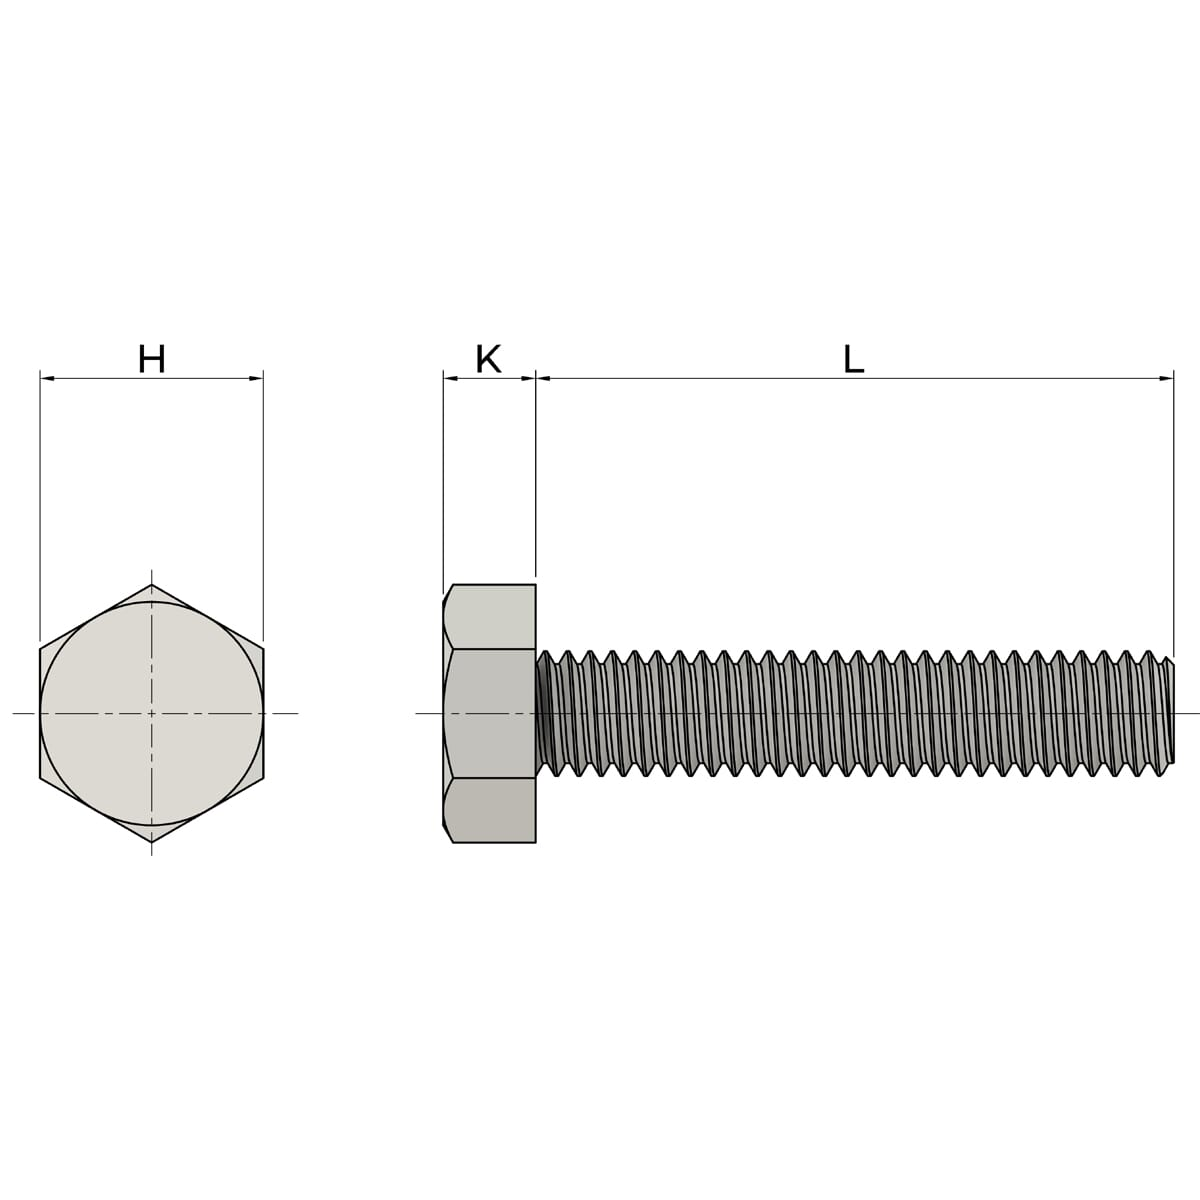 M16 x 190mm Full Thread Hexagon Bolts (DIN 933) - High Tensile Stainless Steel (A4-80) Drawing